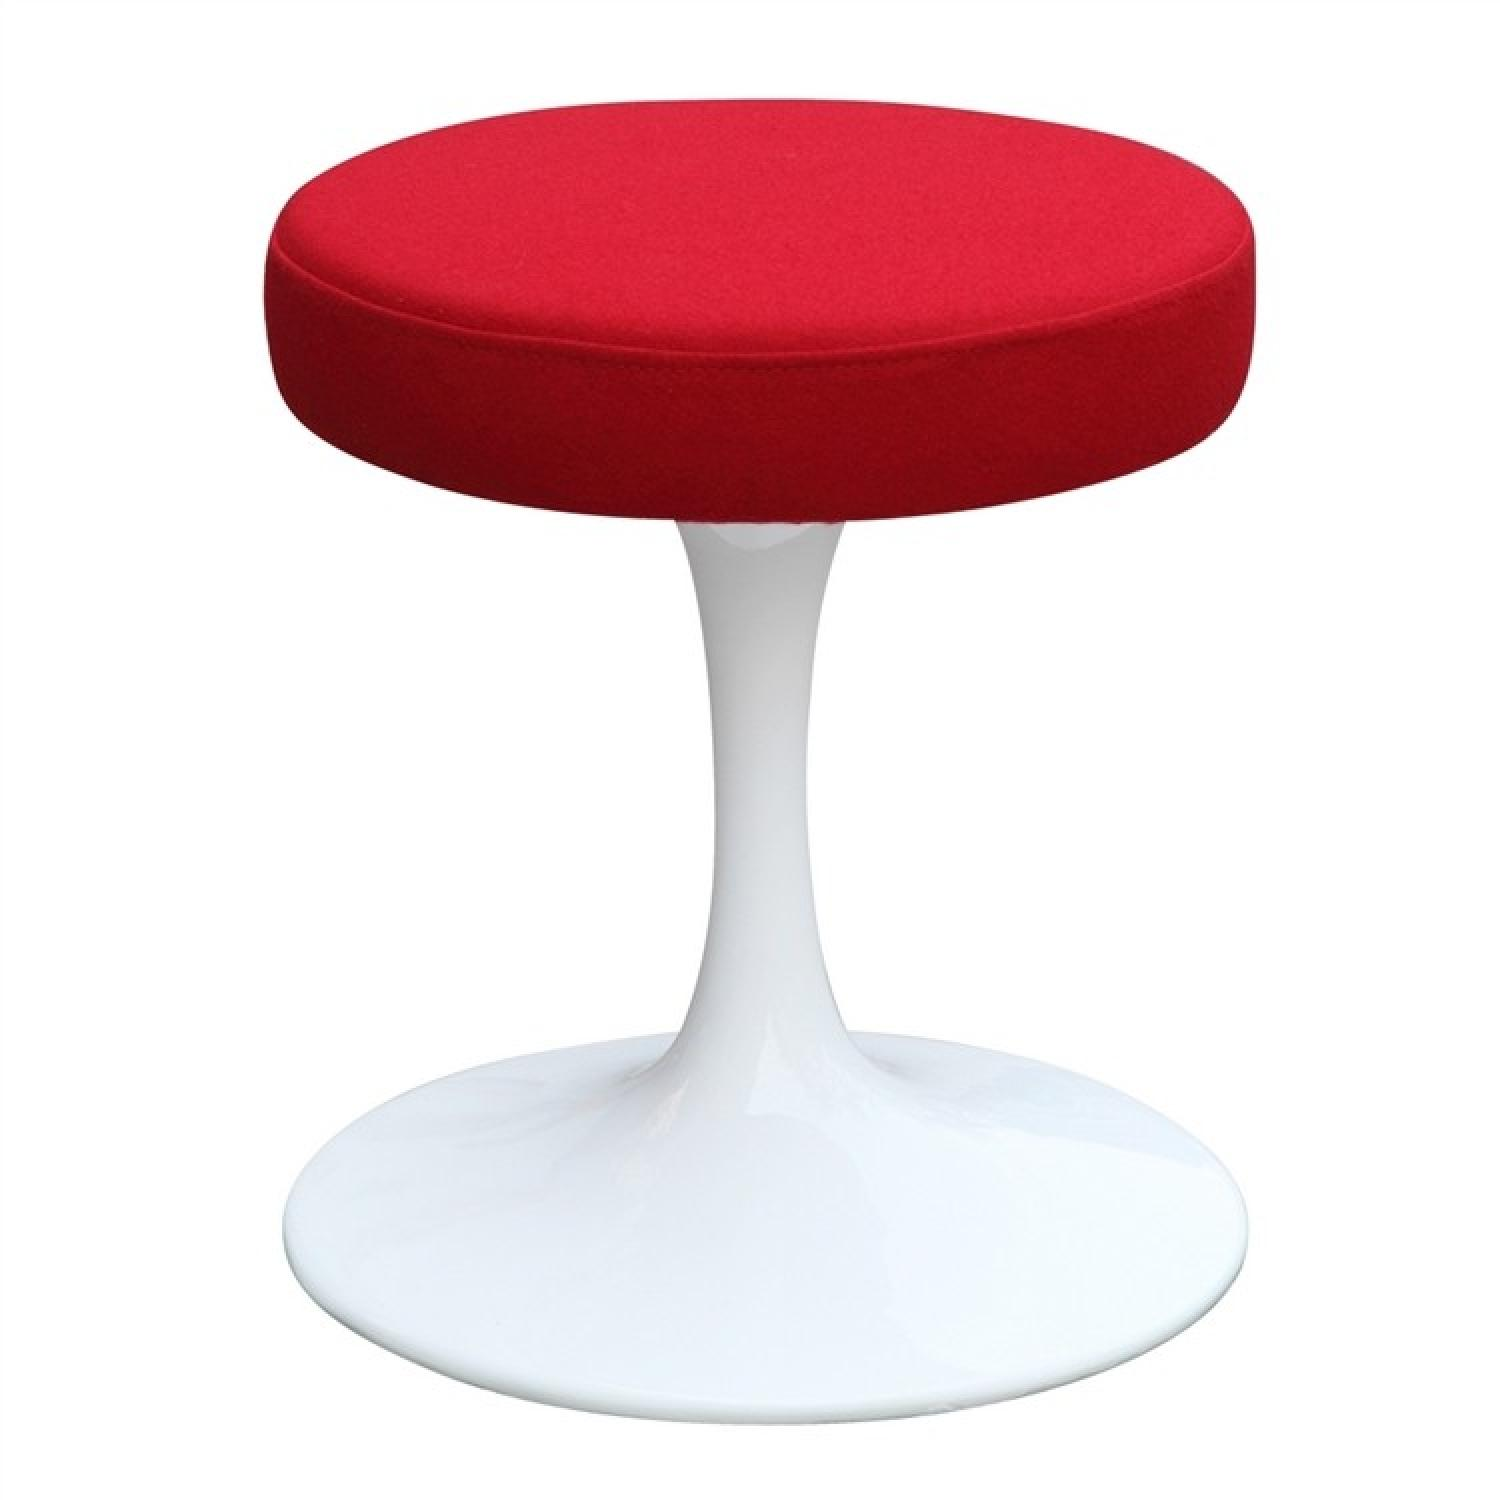 Tulip Style Stool w/ Round Cushion in Red Fabric